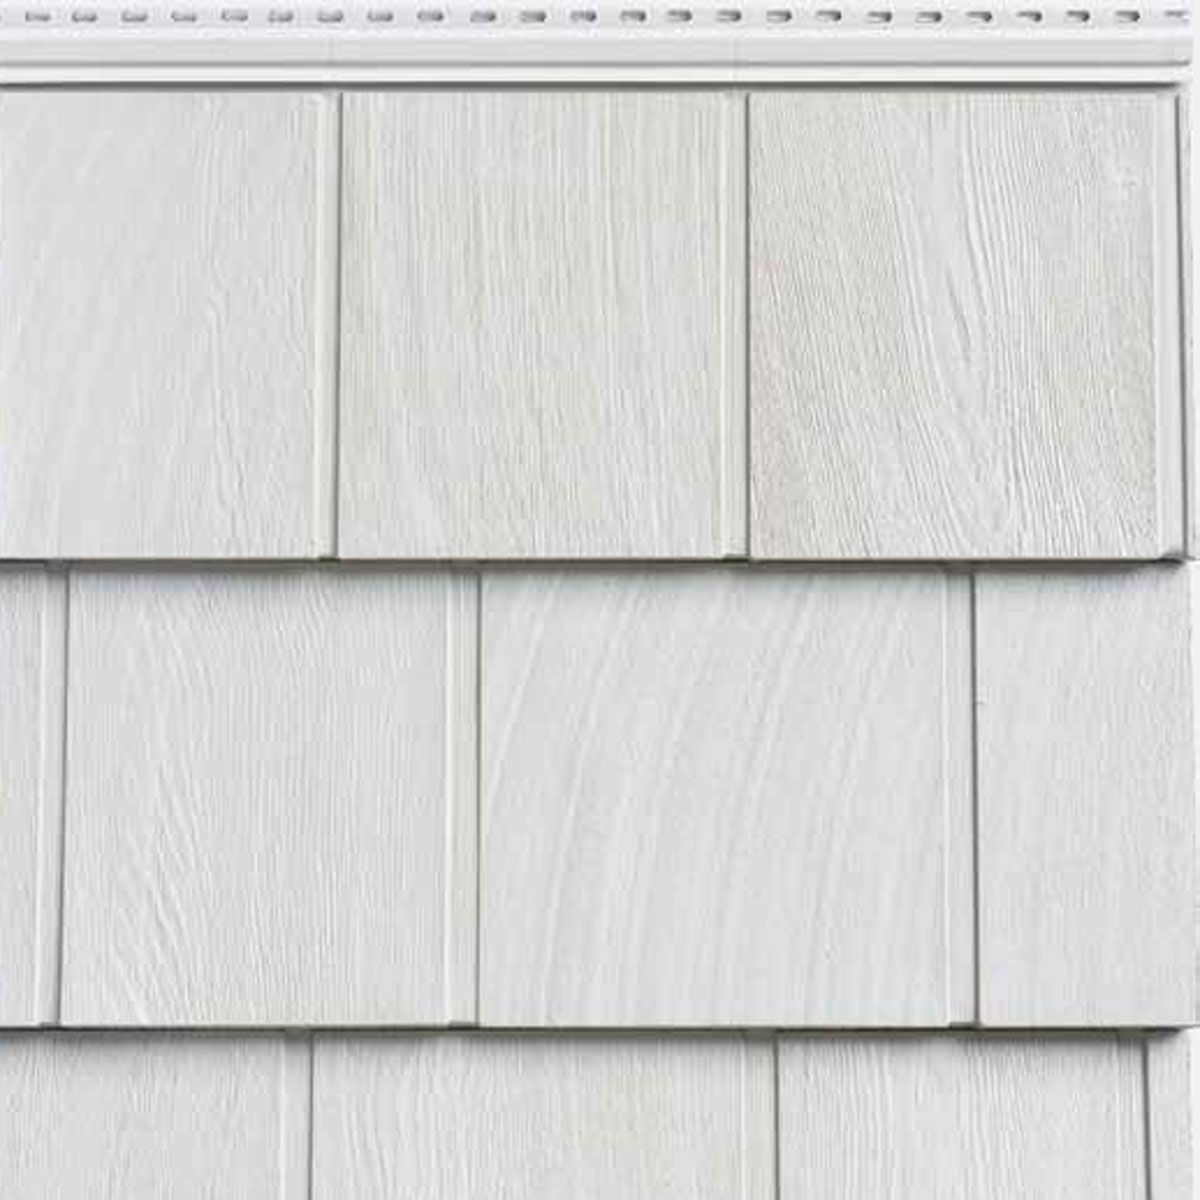 7 W X 60 3 4 L Exposure Vinyl Narrow Sawn Cedar Shingle 34 Panels Ctn 100 Sq Feet Vinyl Shingle Siding Shingle Siding Cedar Shingles